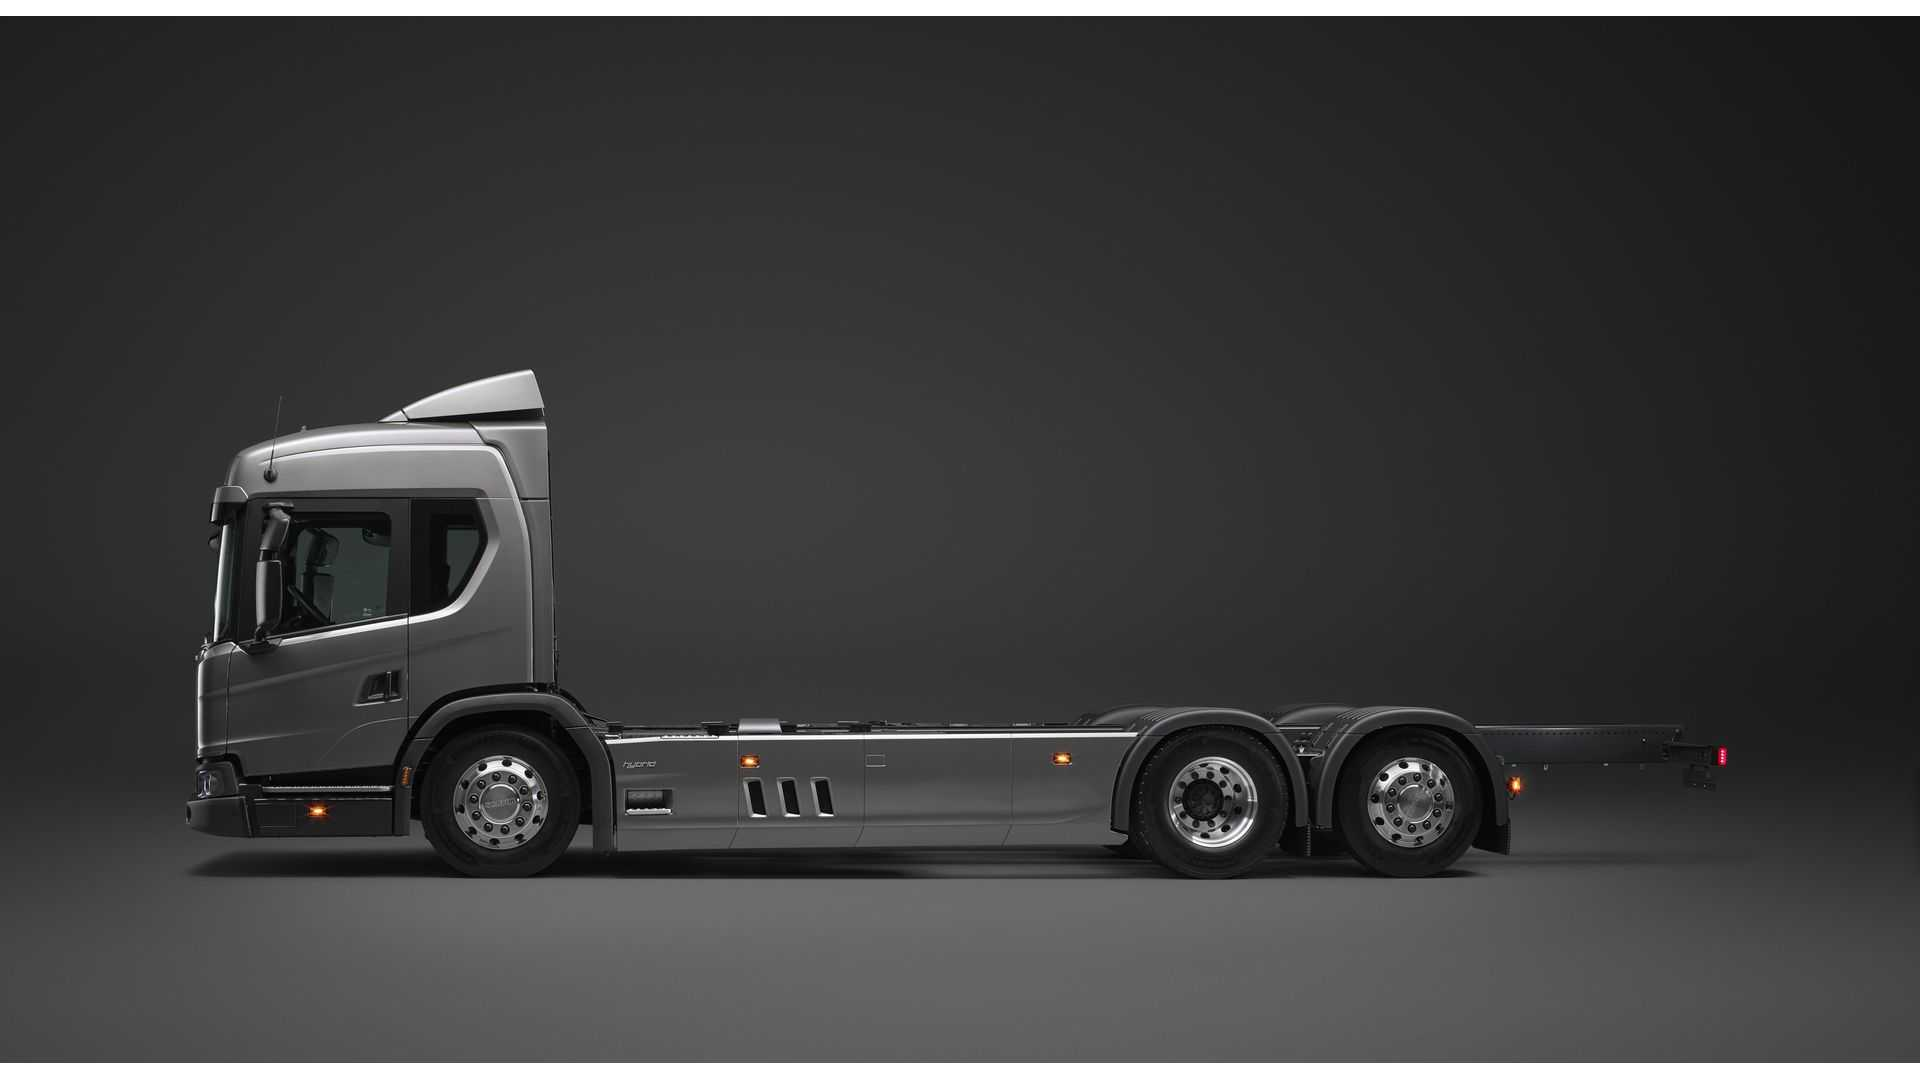 Scania Presents New L 320 6x2 Truck In PHEV Version